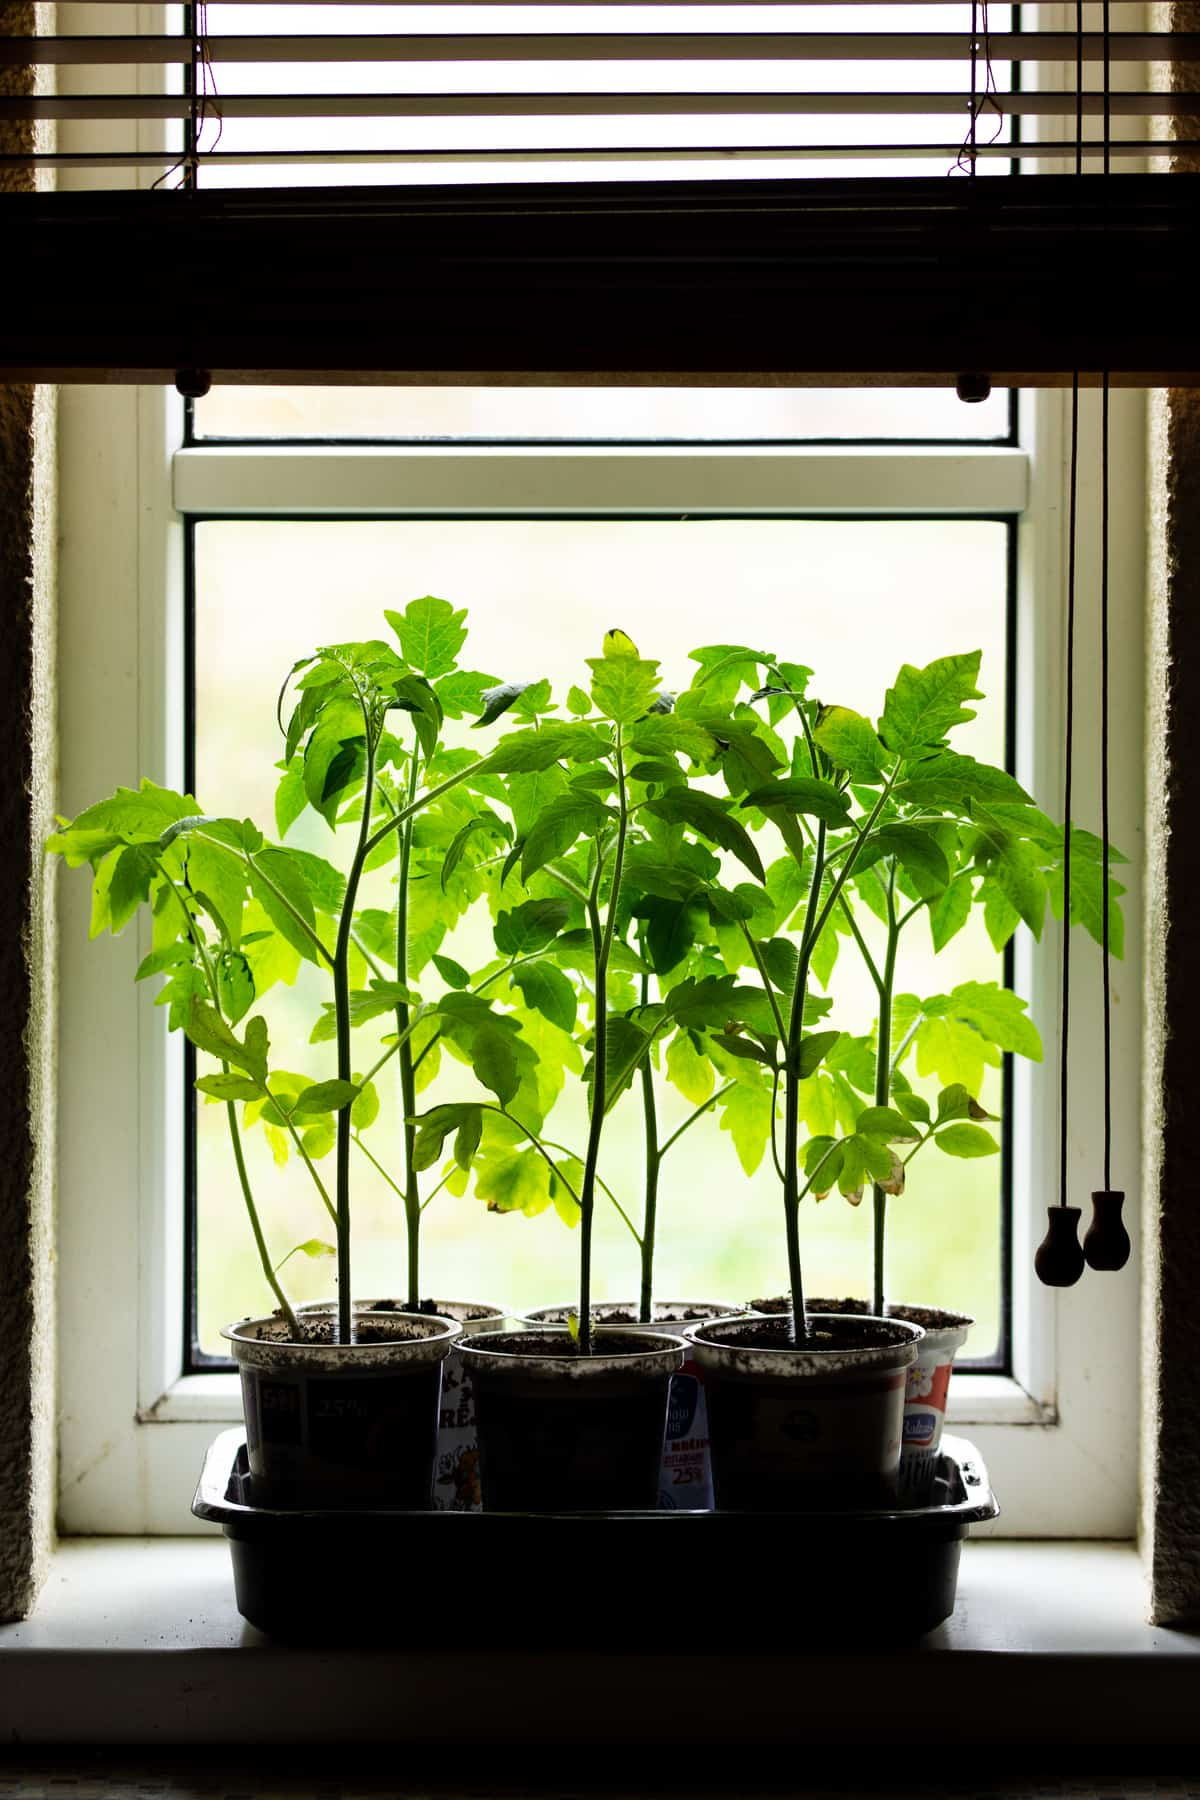 Vegetable seedlings next to a sunny window